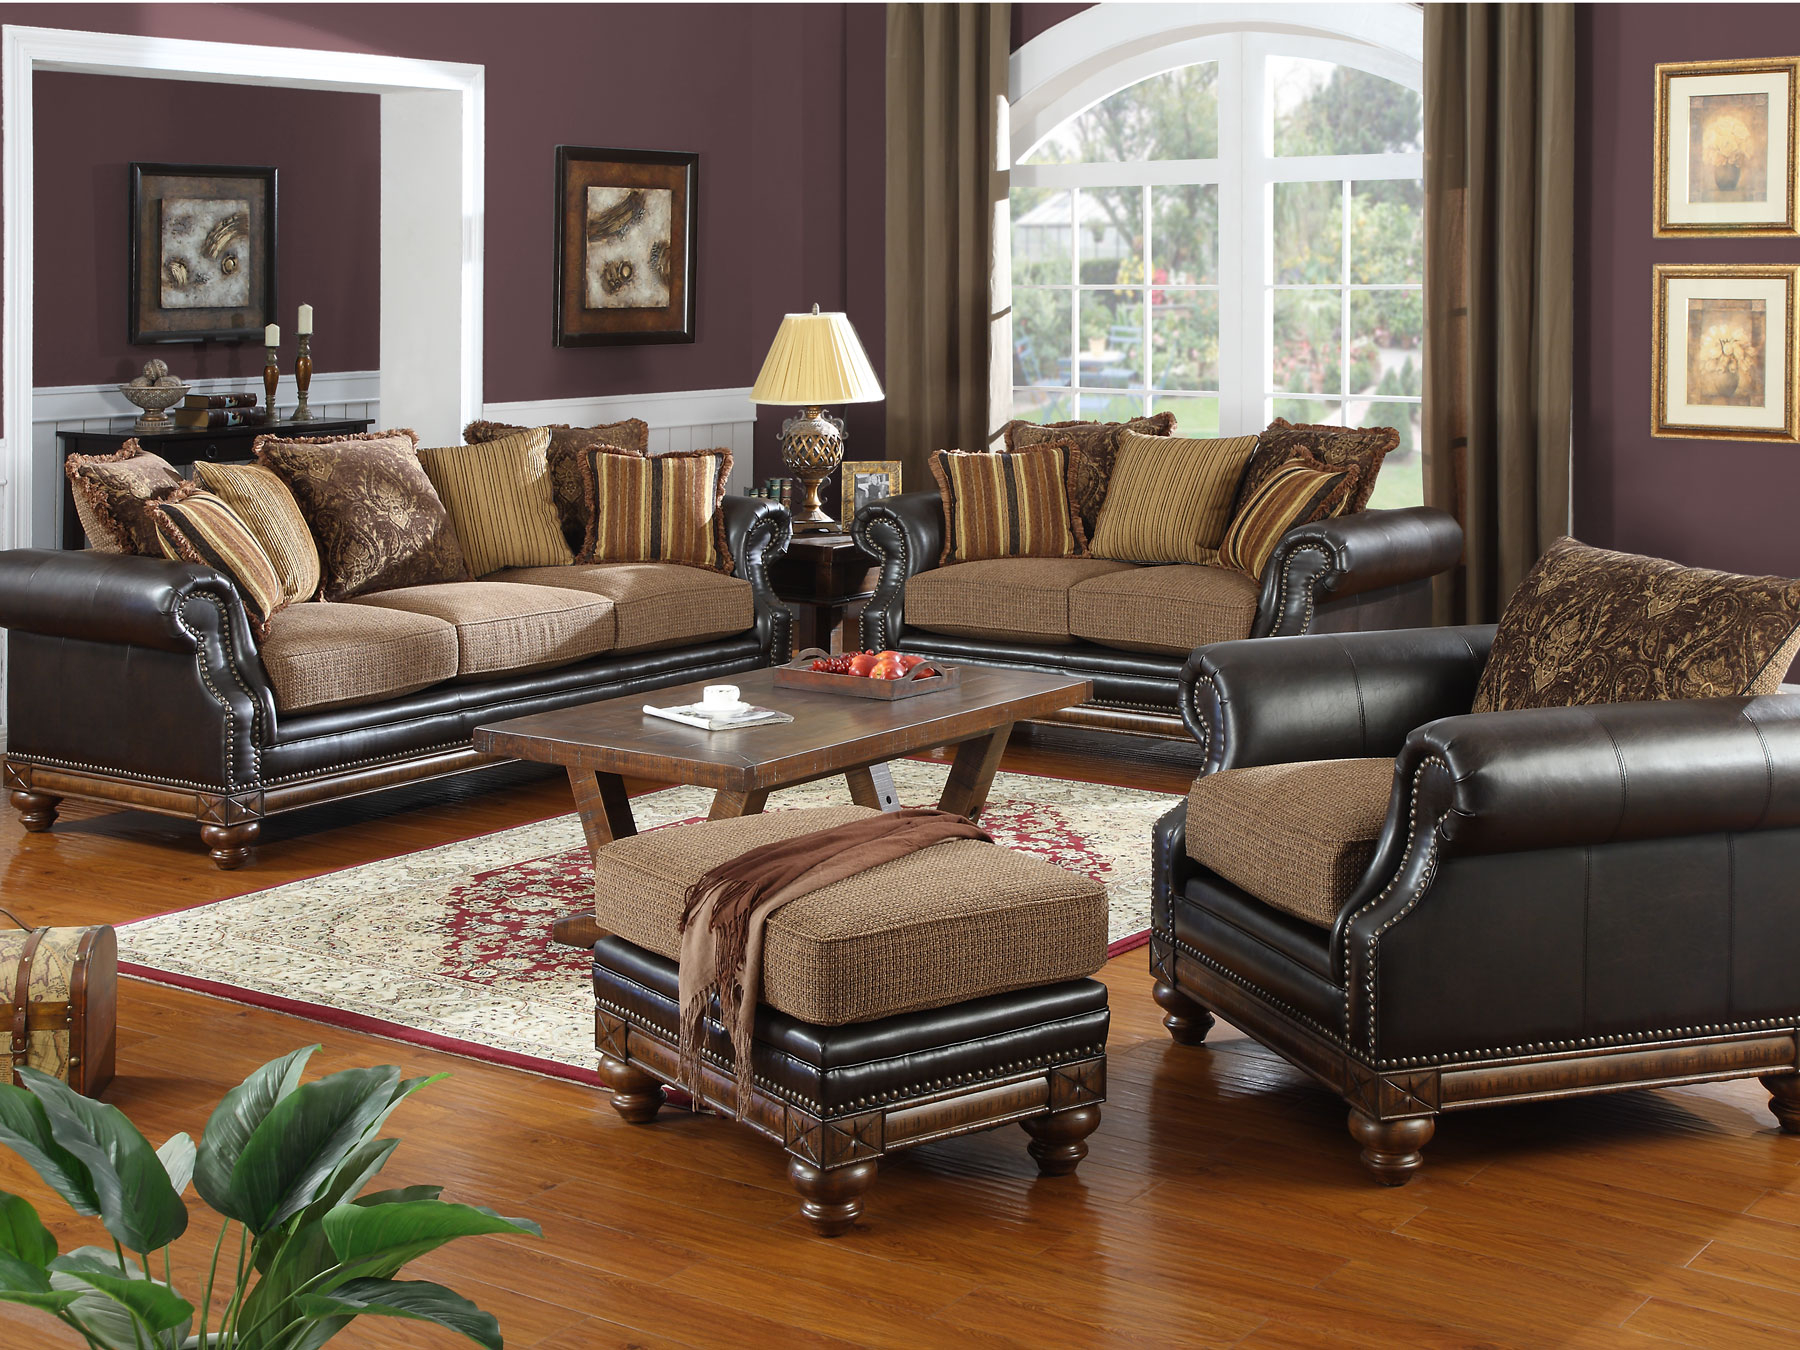 A Complete Guide To Buy Furniture Living Room Sets Elites Home Decor within 14 Some of the Coolest Designs of How to Improve Buy Living Room Set